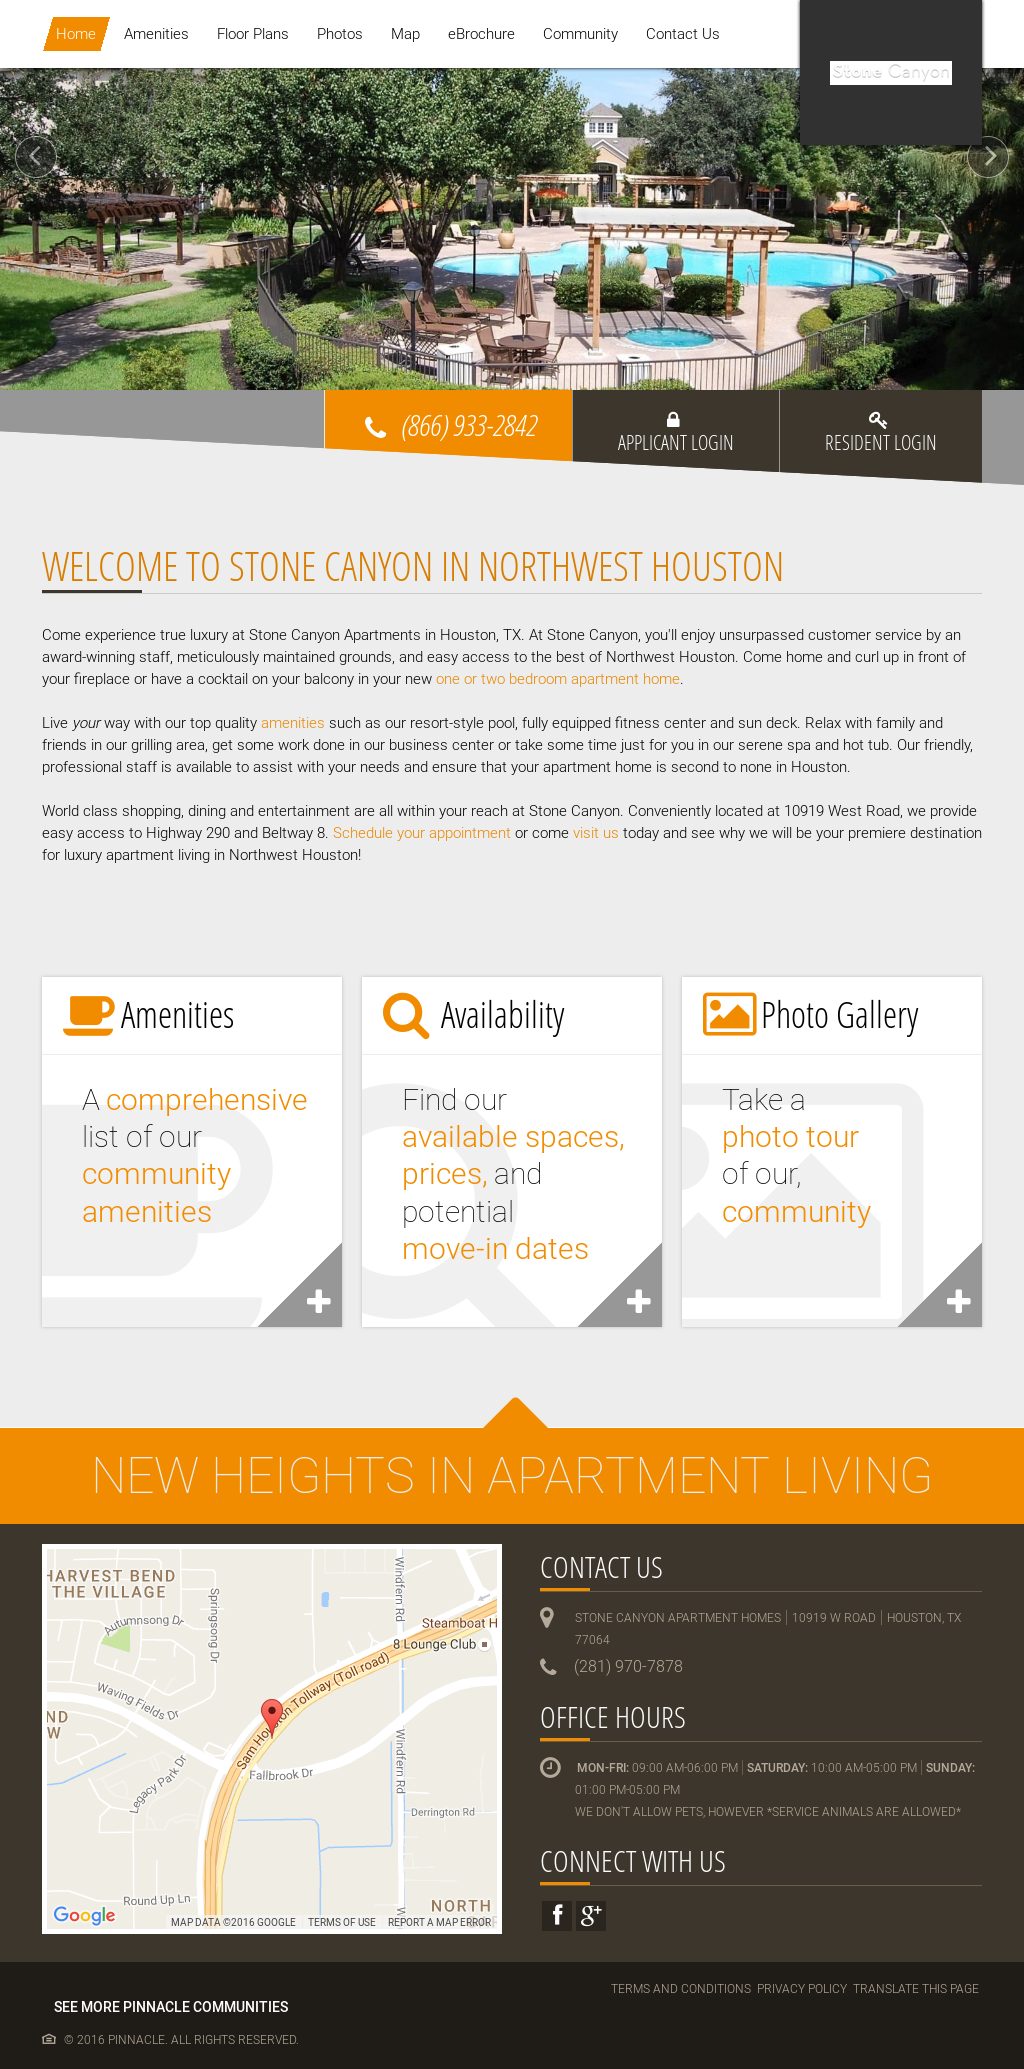 Stone Canyon Apts Competitors, Revenue and Employees - Owler Company ...